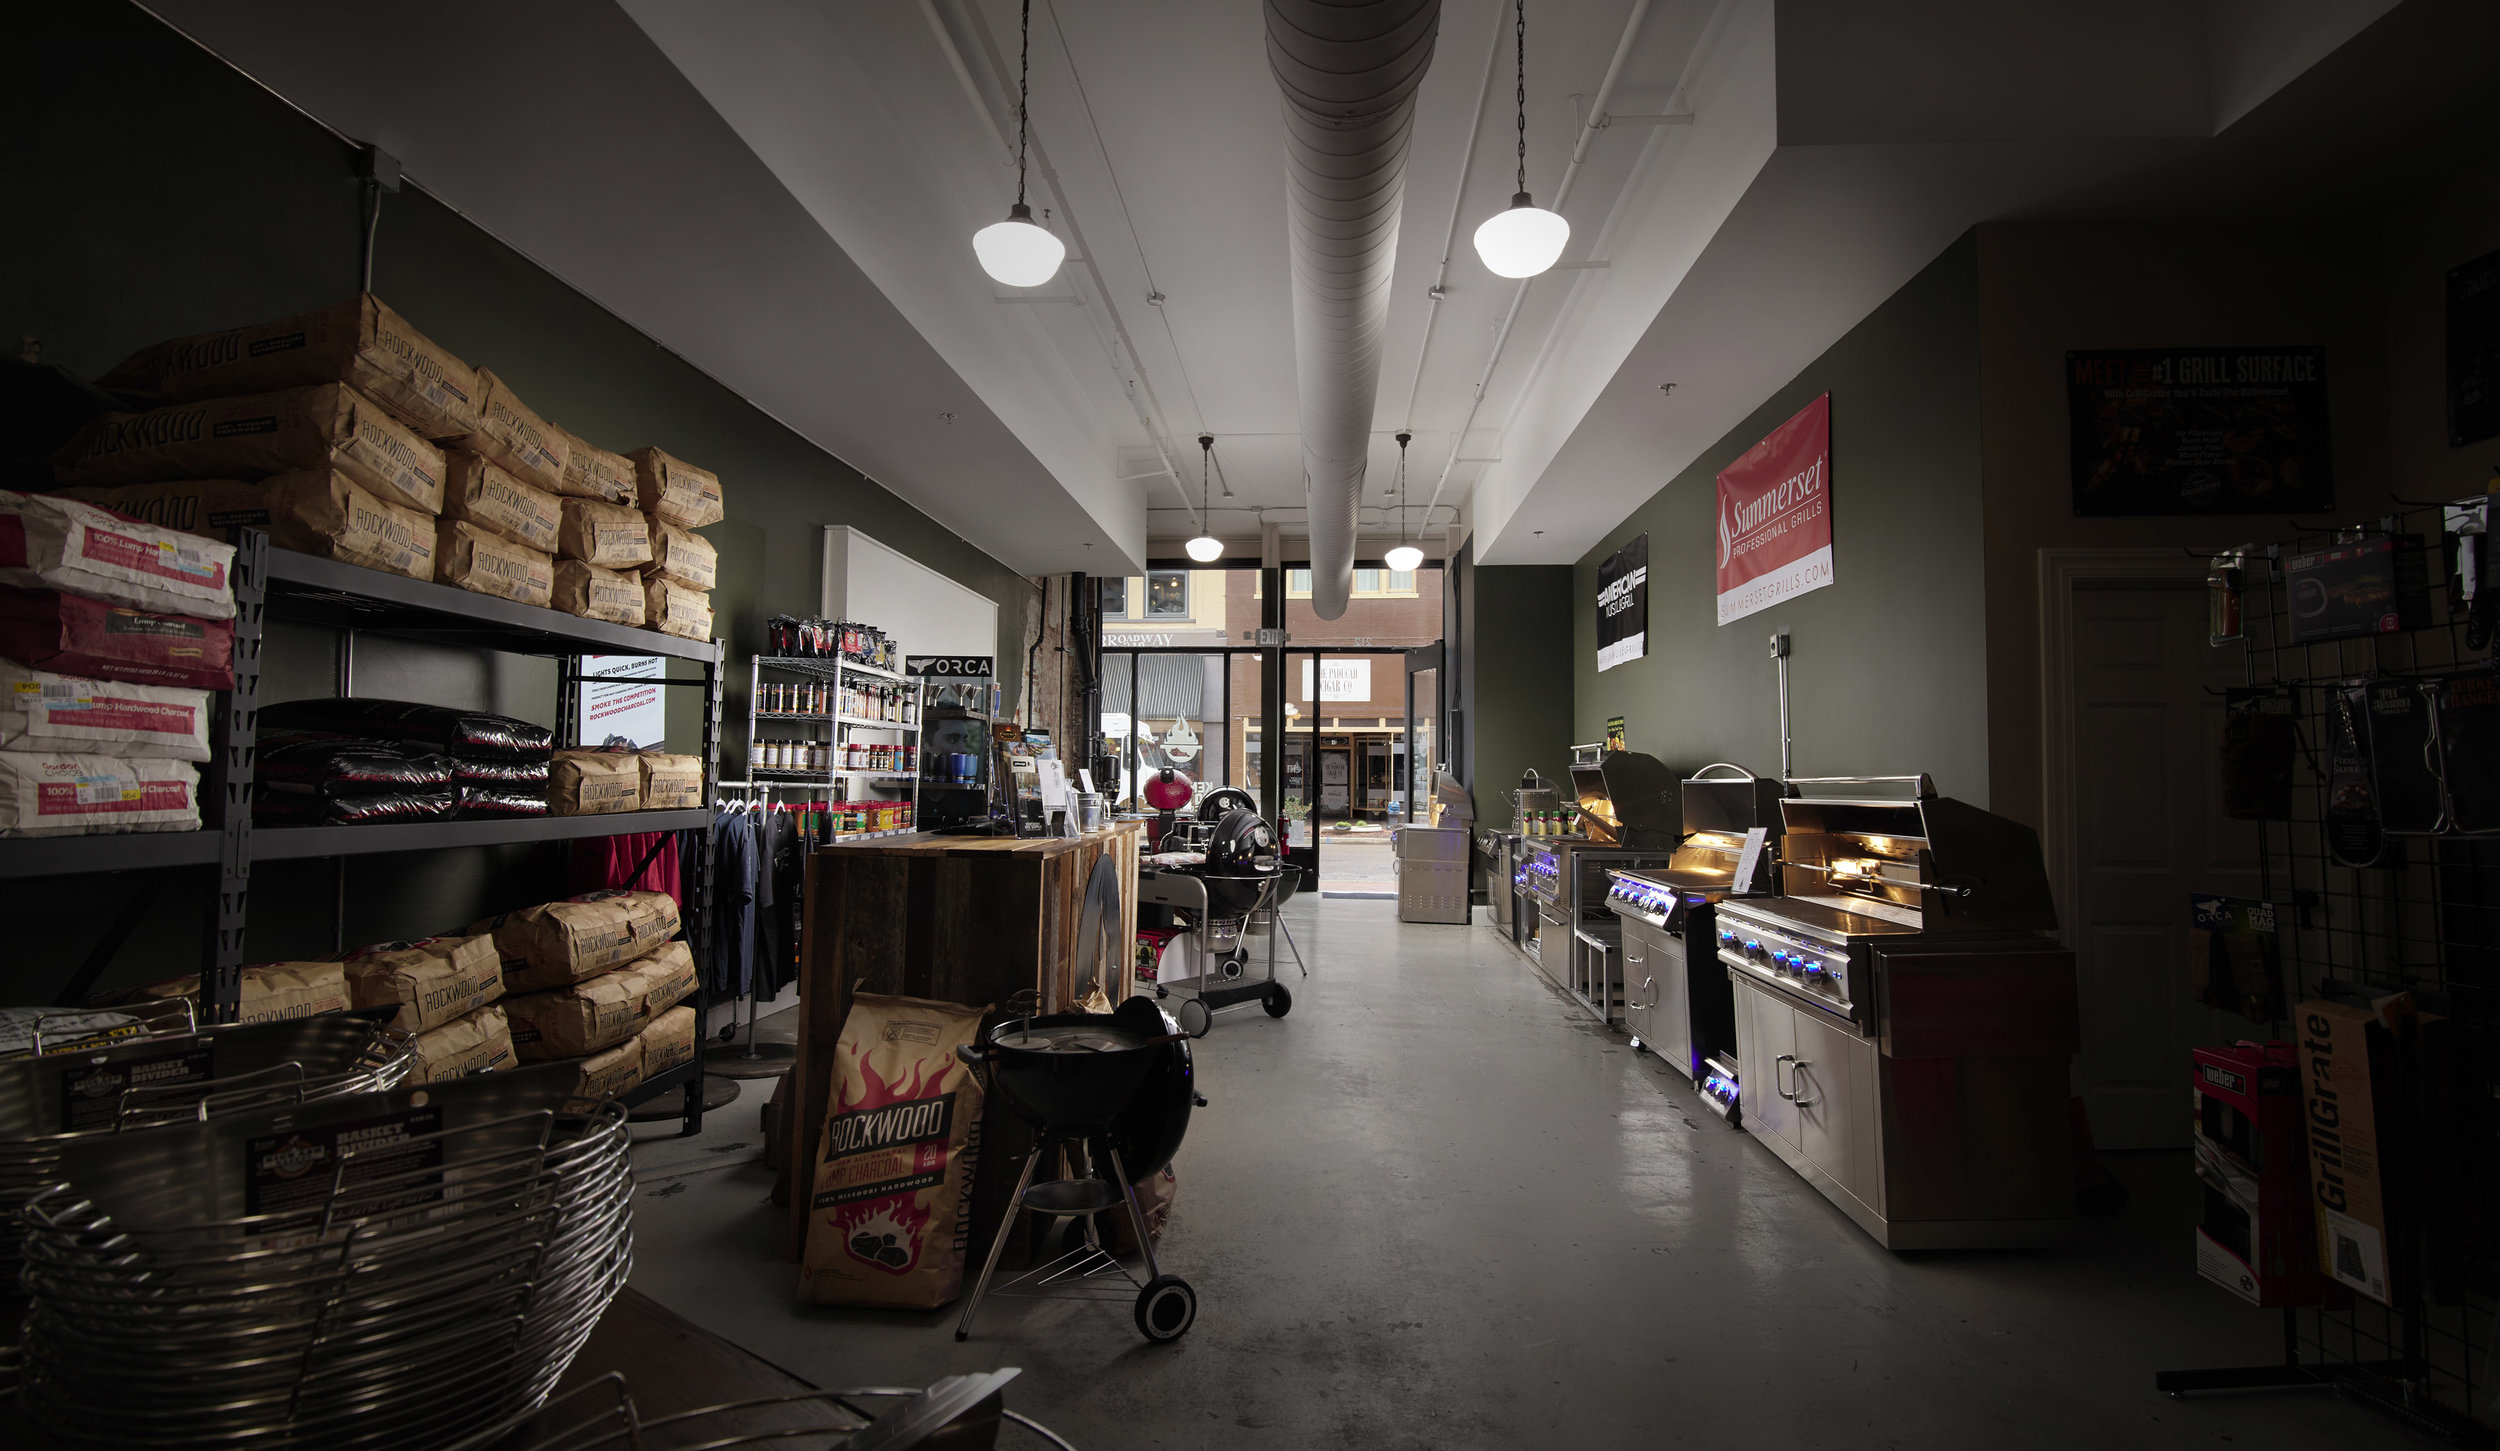 005 - _Final - Interior 1 - 5593 - KY BBQ Supply 2019 - BRS.jpg